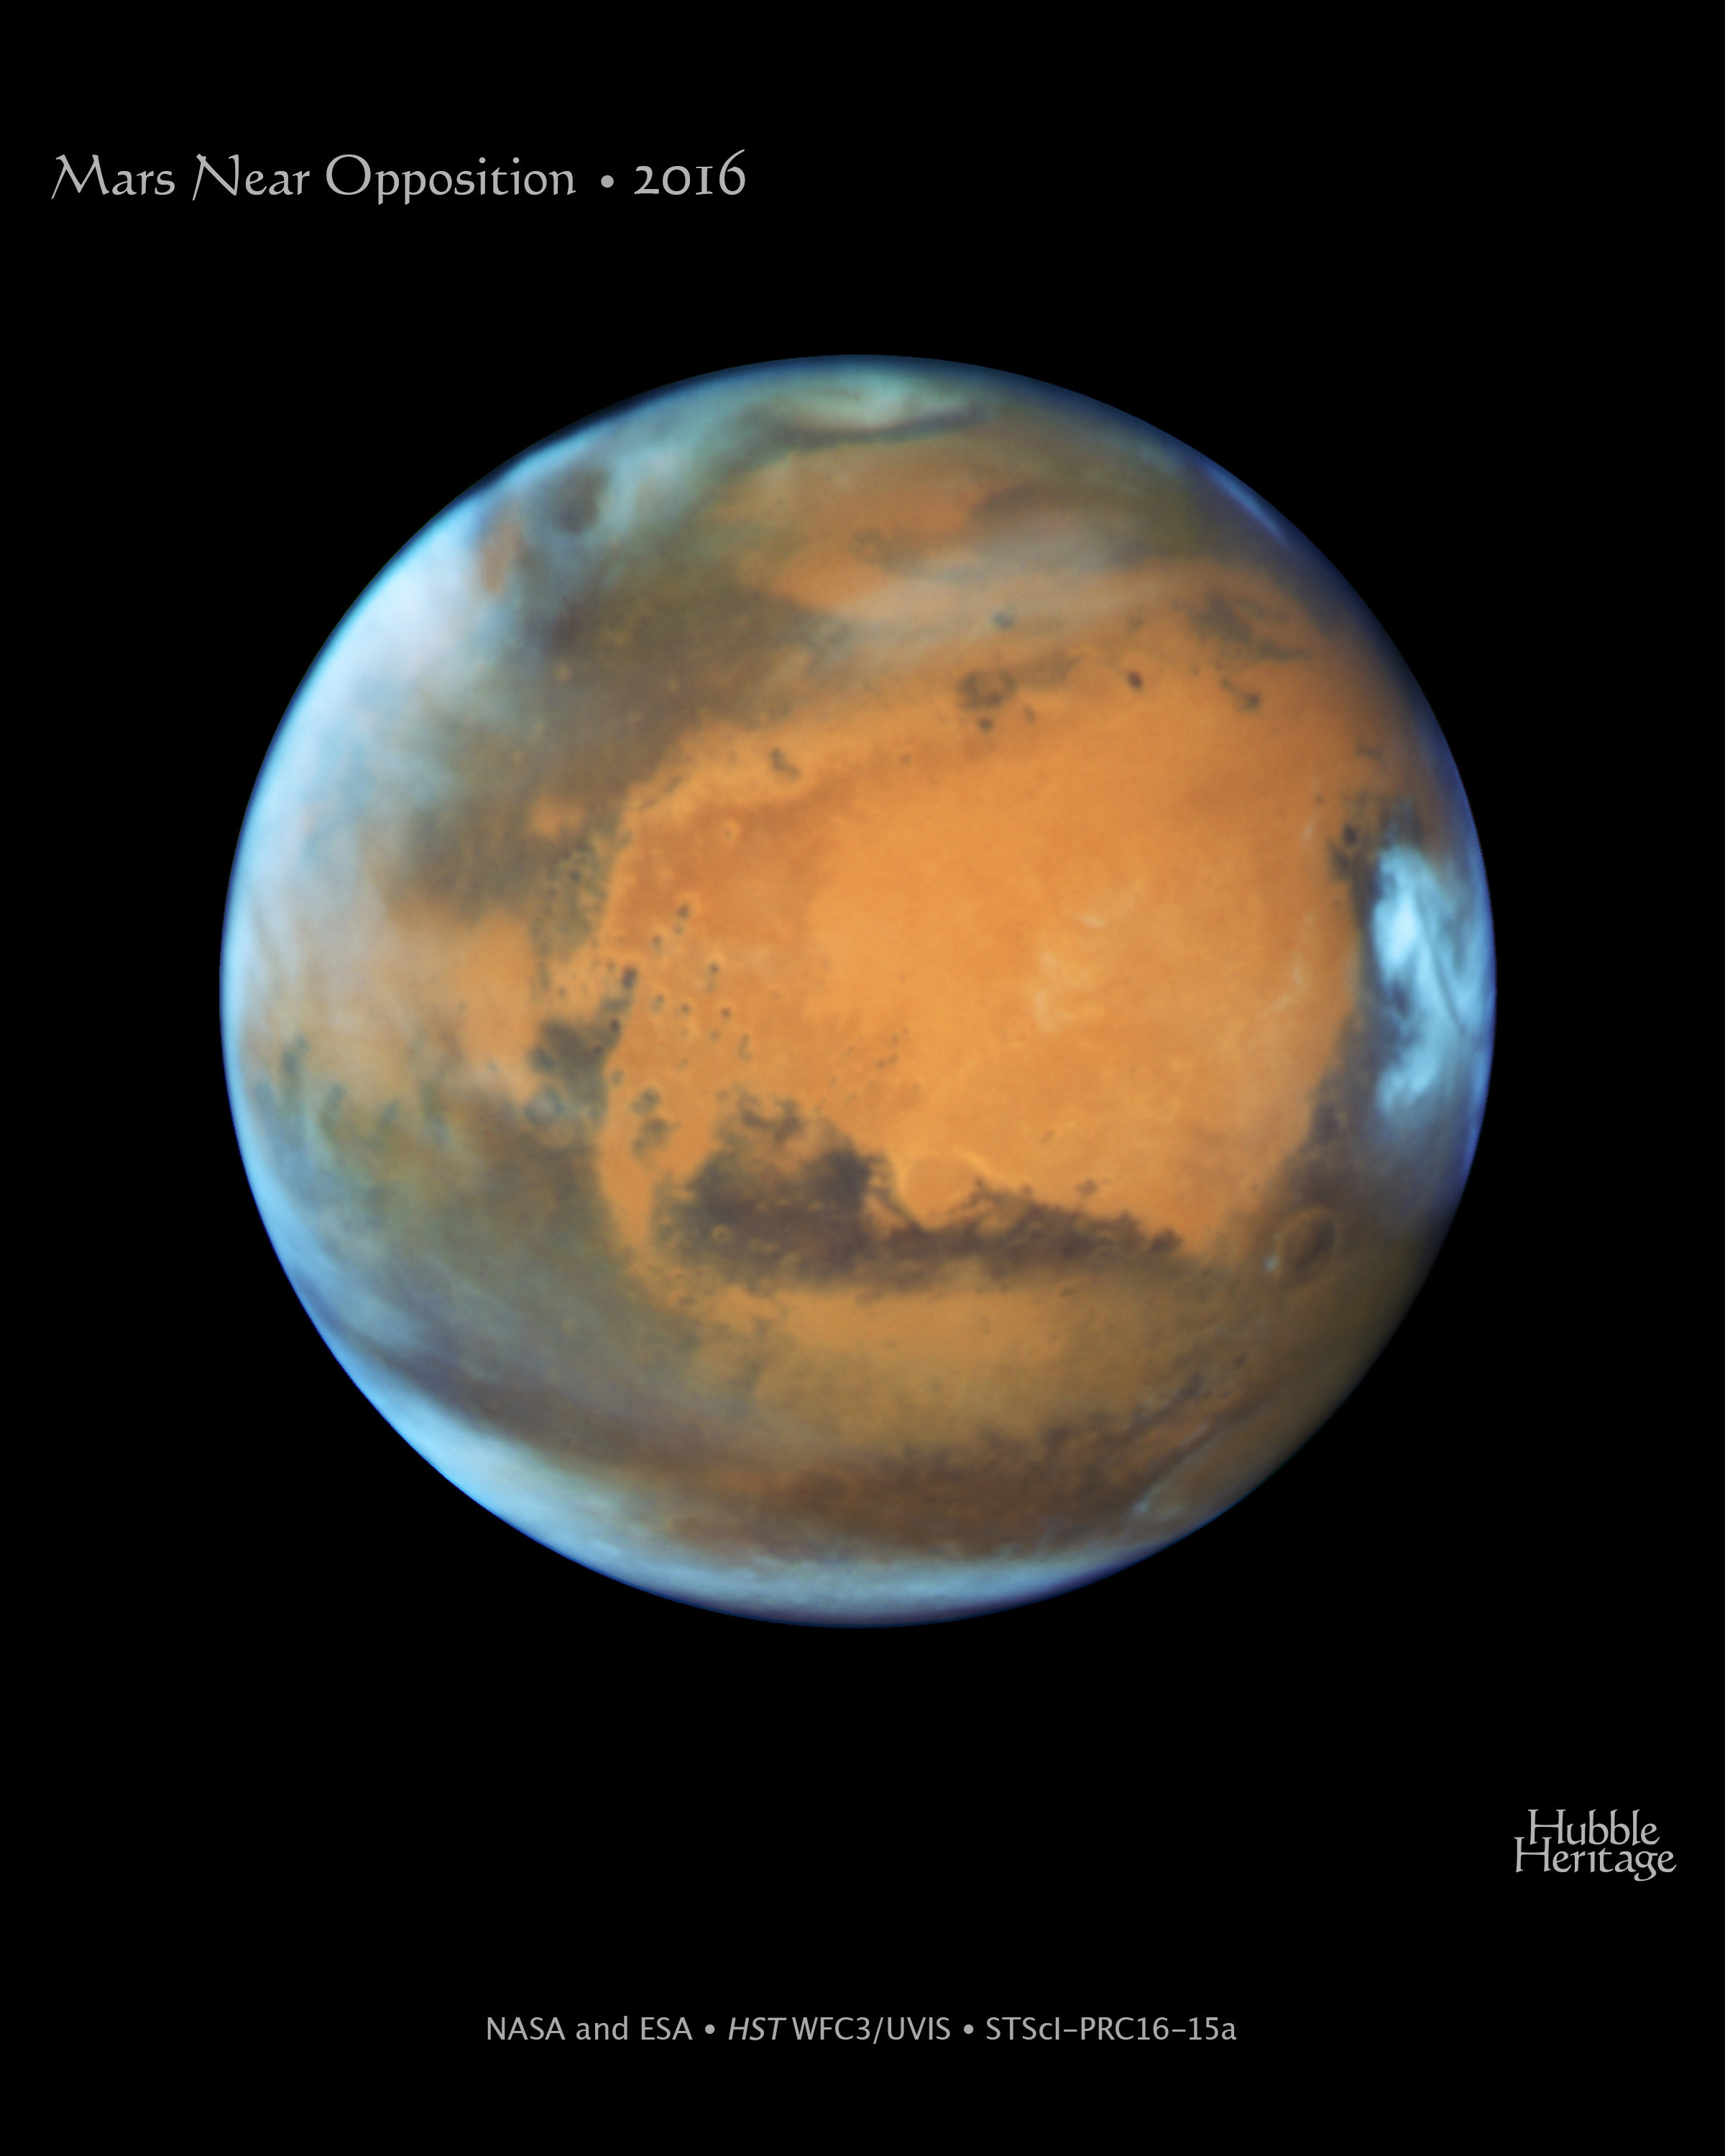 James Webb Space Telescope to reveal secrets of the Red Planet